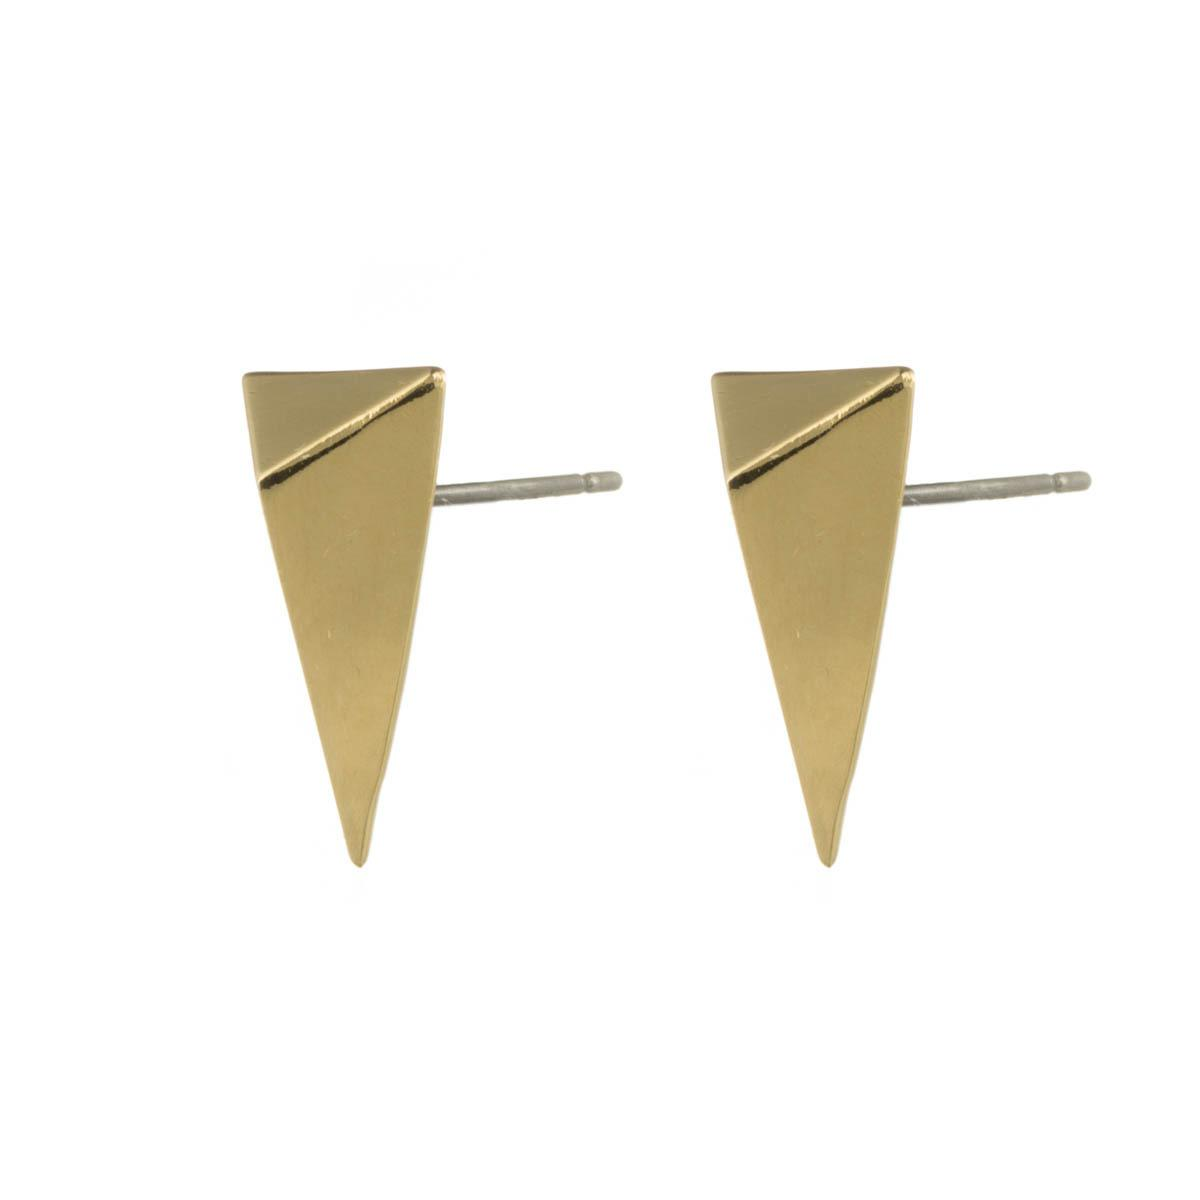 Alexis Bittar Gold Pyramid Post Earring 88dUcozH